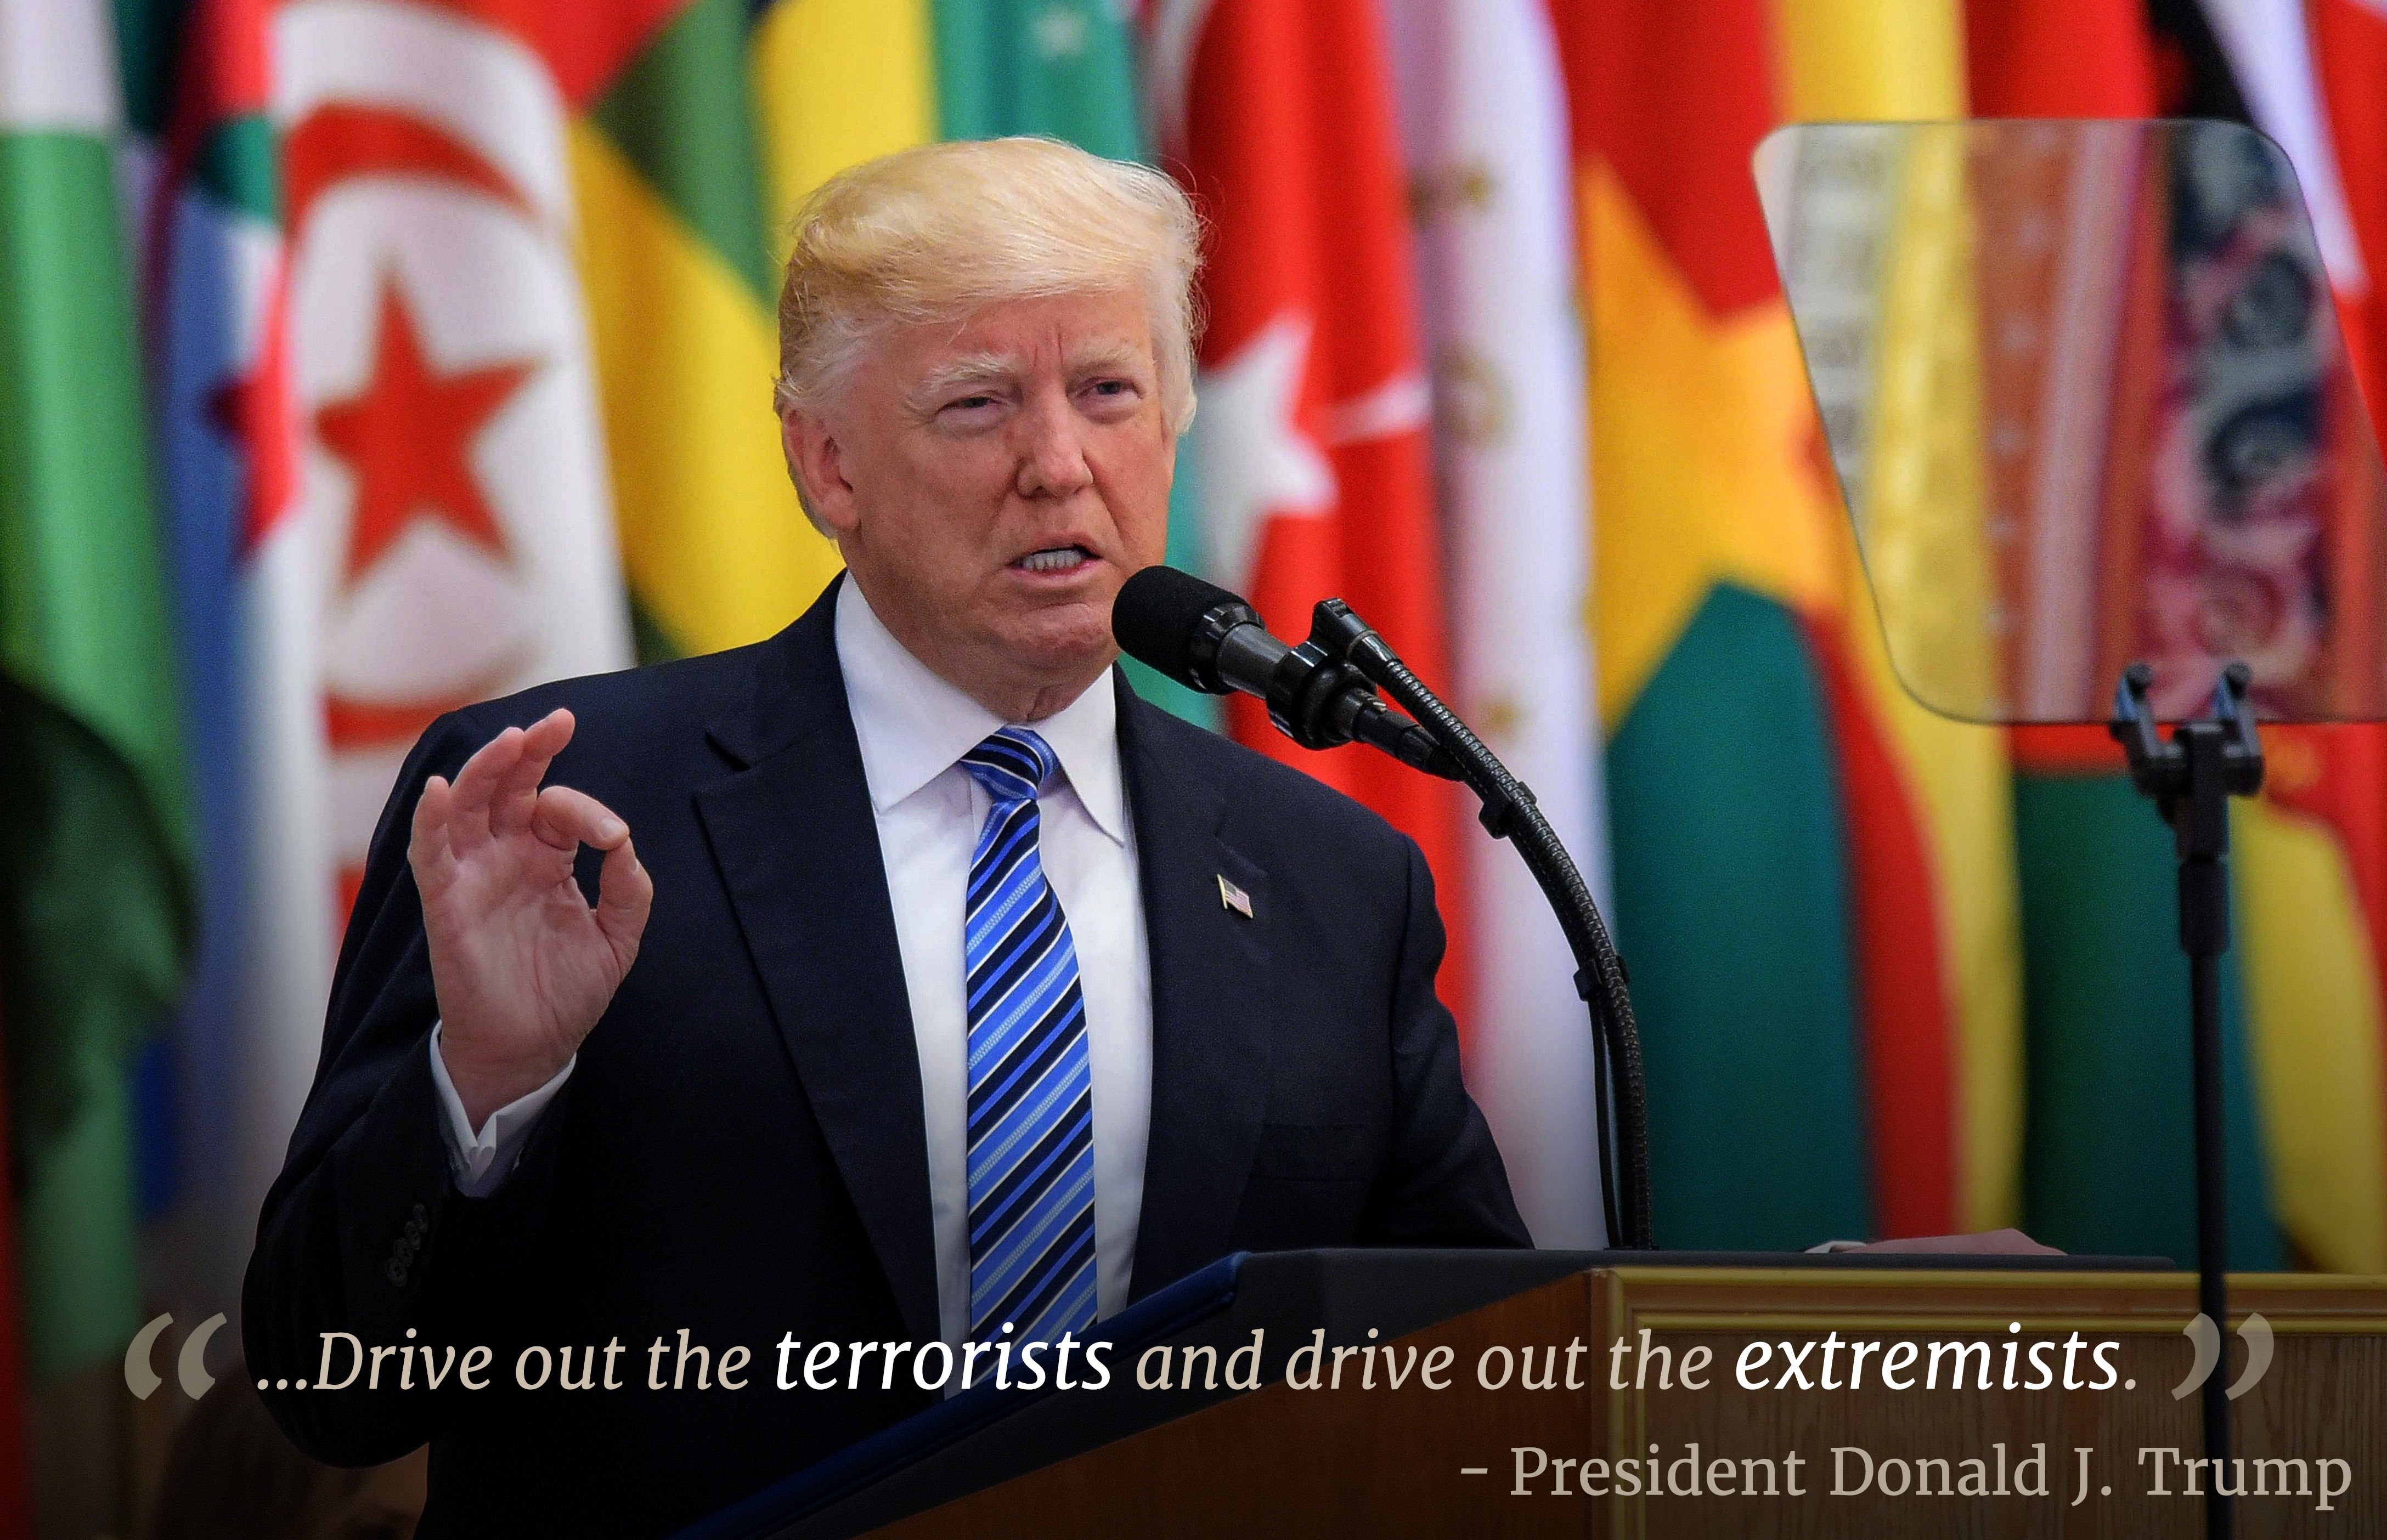 President Trump at podium in front of flags with overlaid text 'Drive out the terrorists and drive out the extremists' (© Mandel Ngan/AFP/Getty Images)